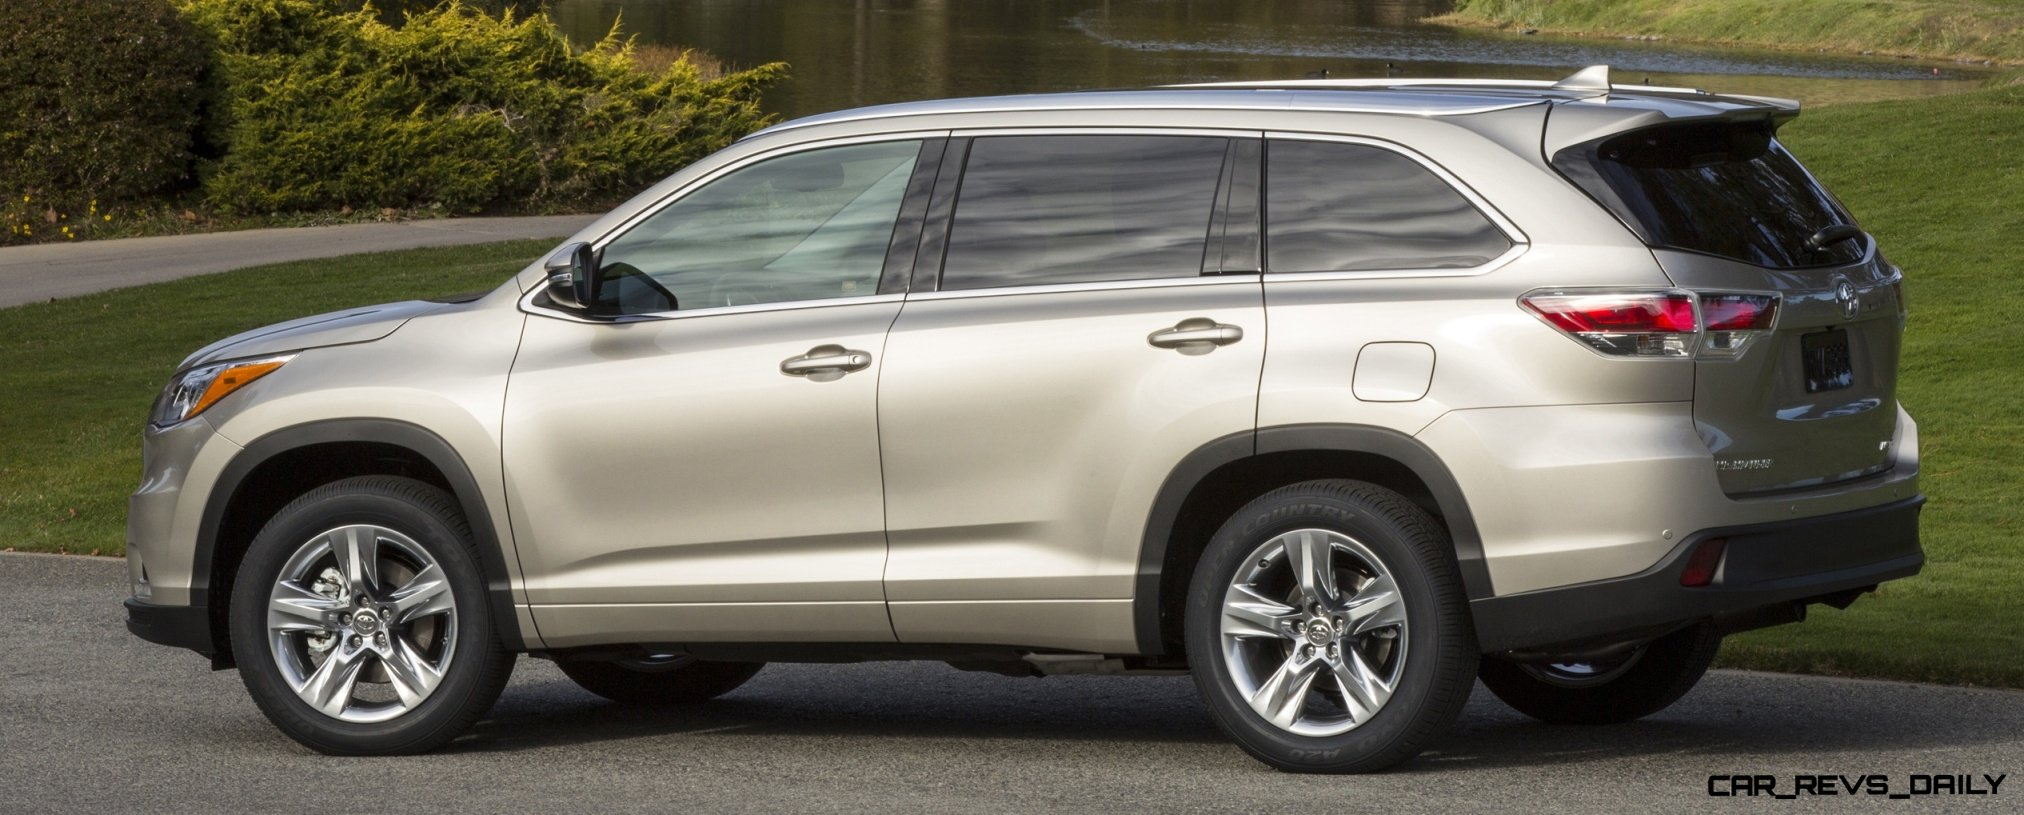 Carrevsdaily 2014 toyota highlander exterior photo41 Toyota highlander 2014 exterior